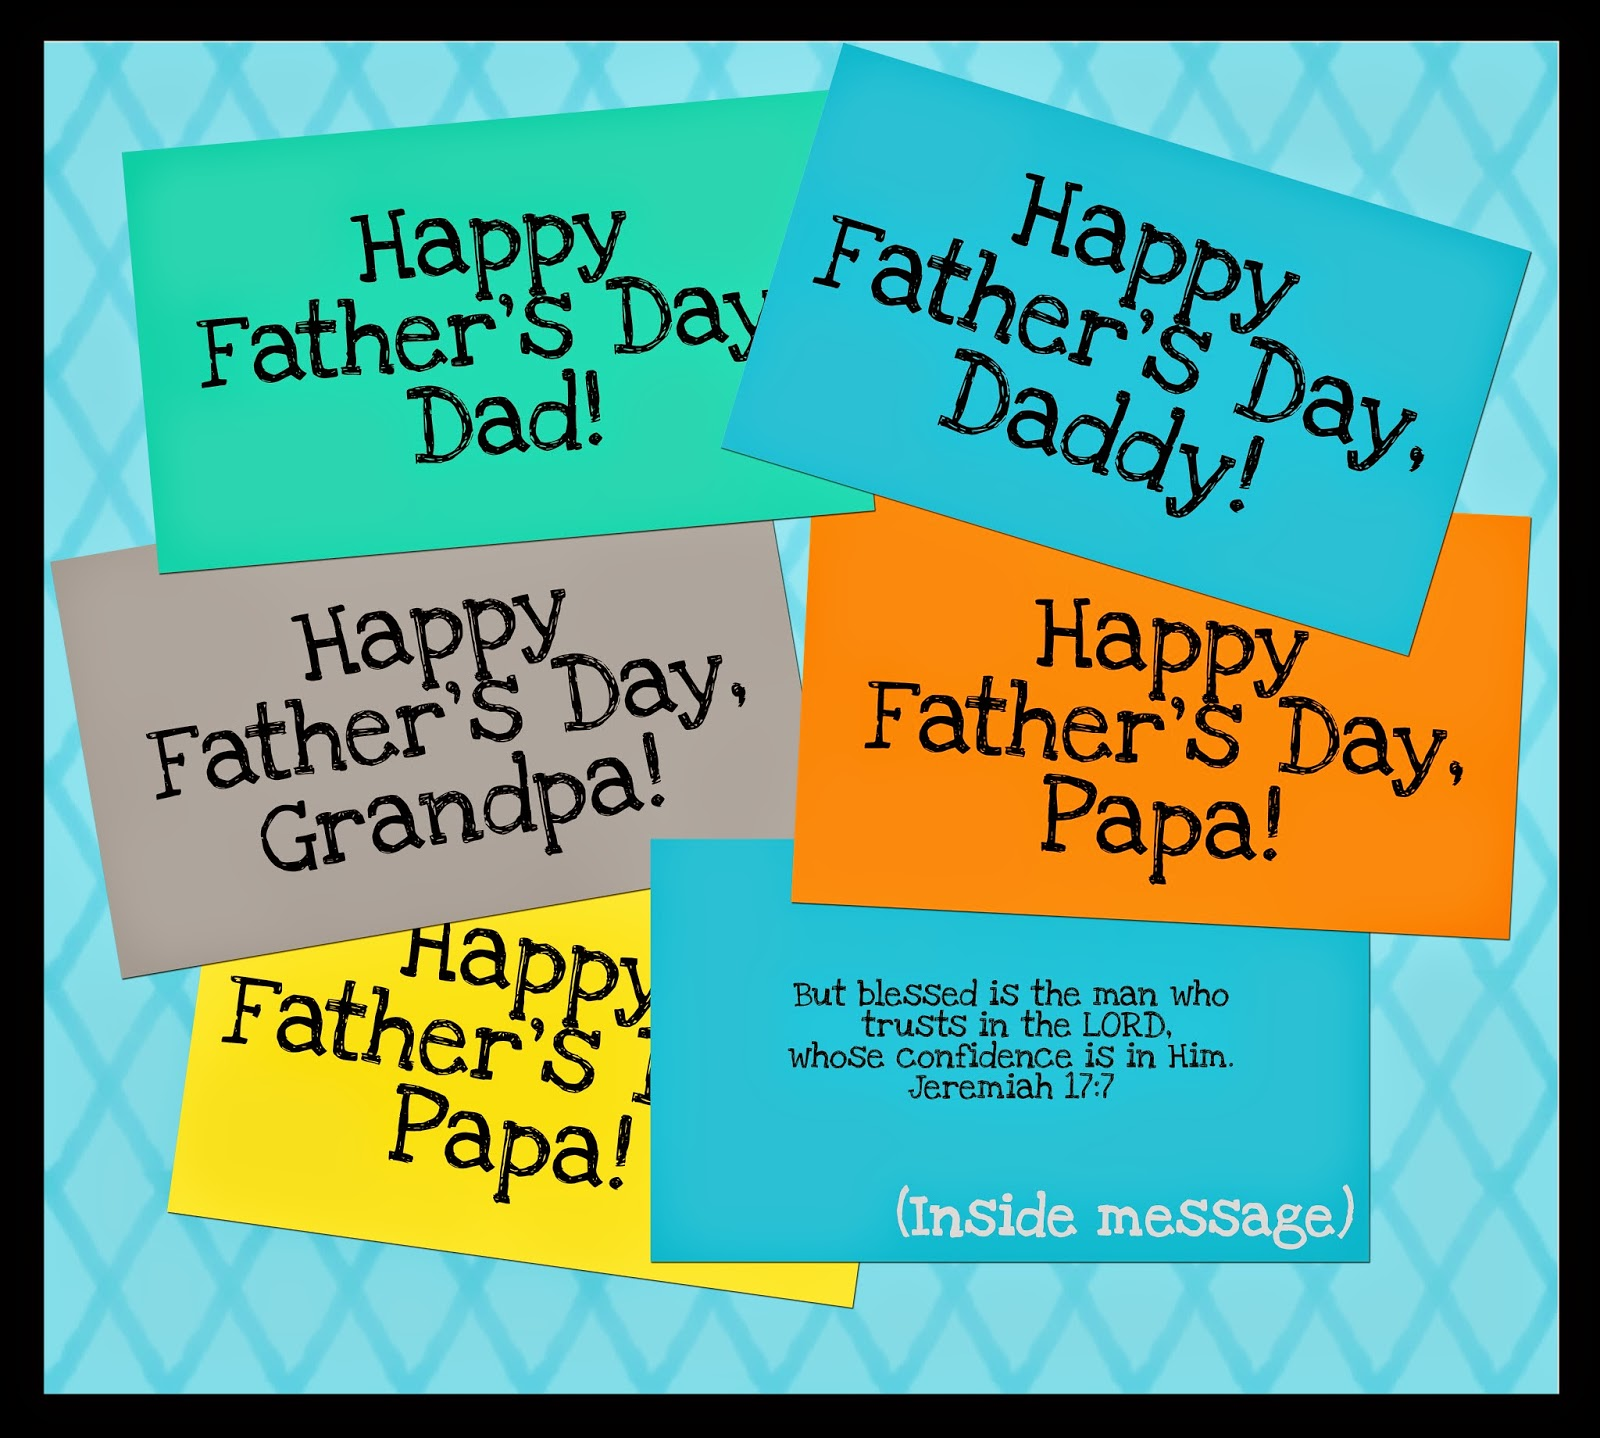 photograph about All About My Papa Printable named Versus the Carriage Household: Uncomplicated Fathers Working day Card Printable